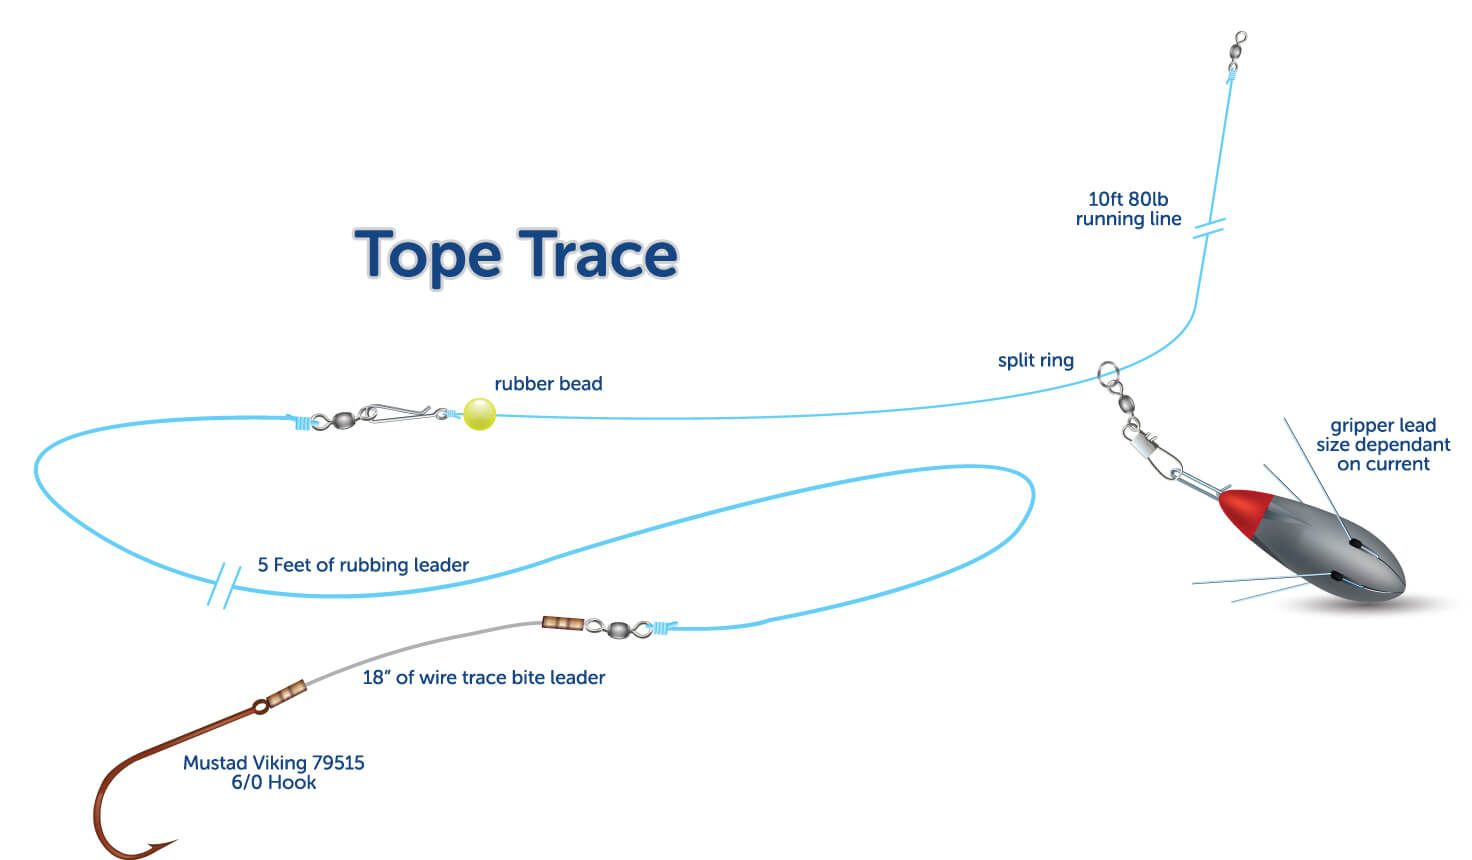 How to build a tope wire trace sea anglers guide for Shore fishing rigs